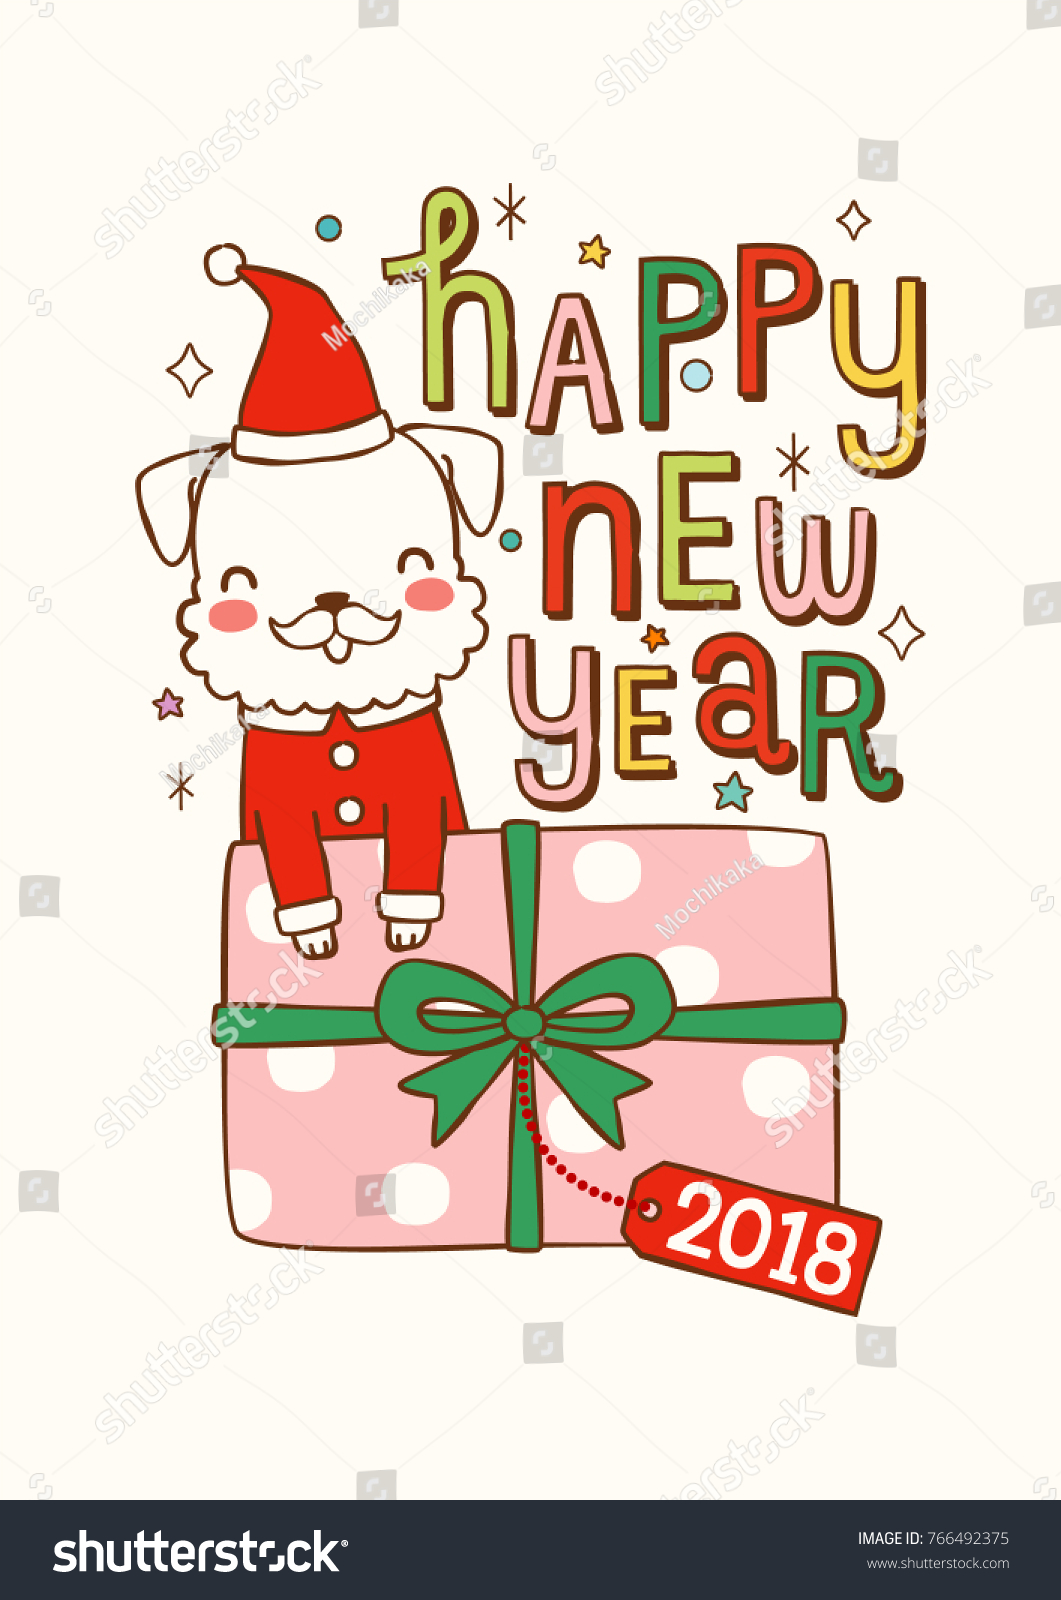 Happy New Year 2018 Greeting Card Stock Vector (Royalty Free ...